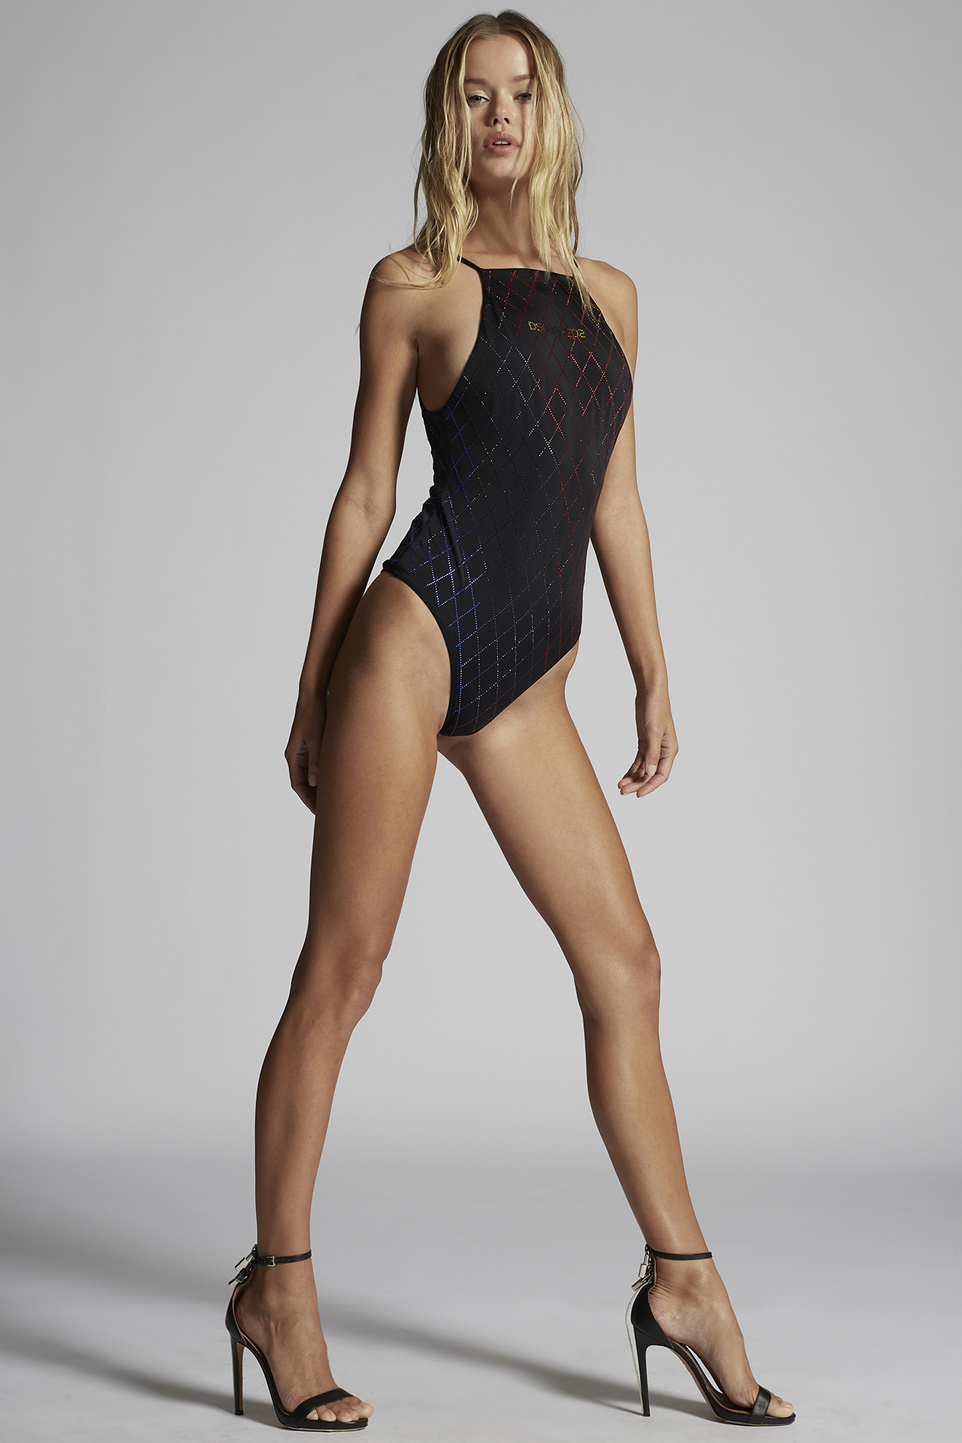 Rainbow Crystal Swimsuit by Dsquared2, available on dsquared2.com for $580 Frida Aasen Dress Exact Product